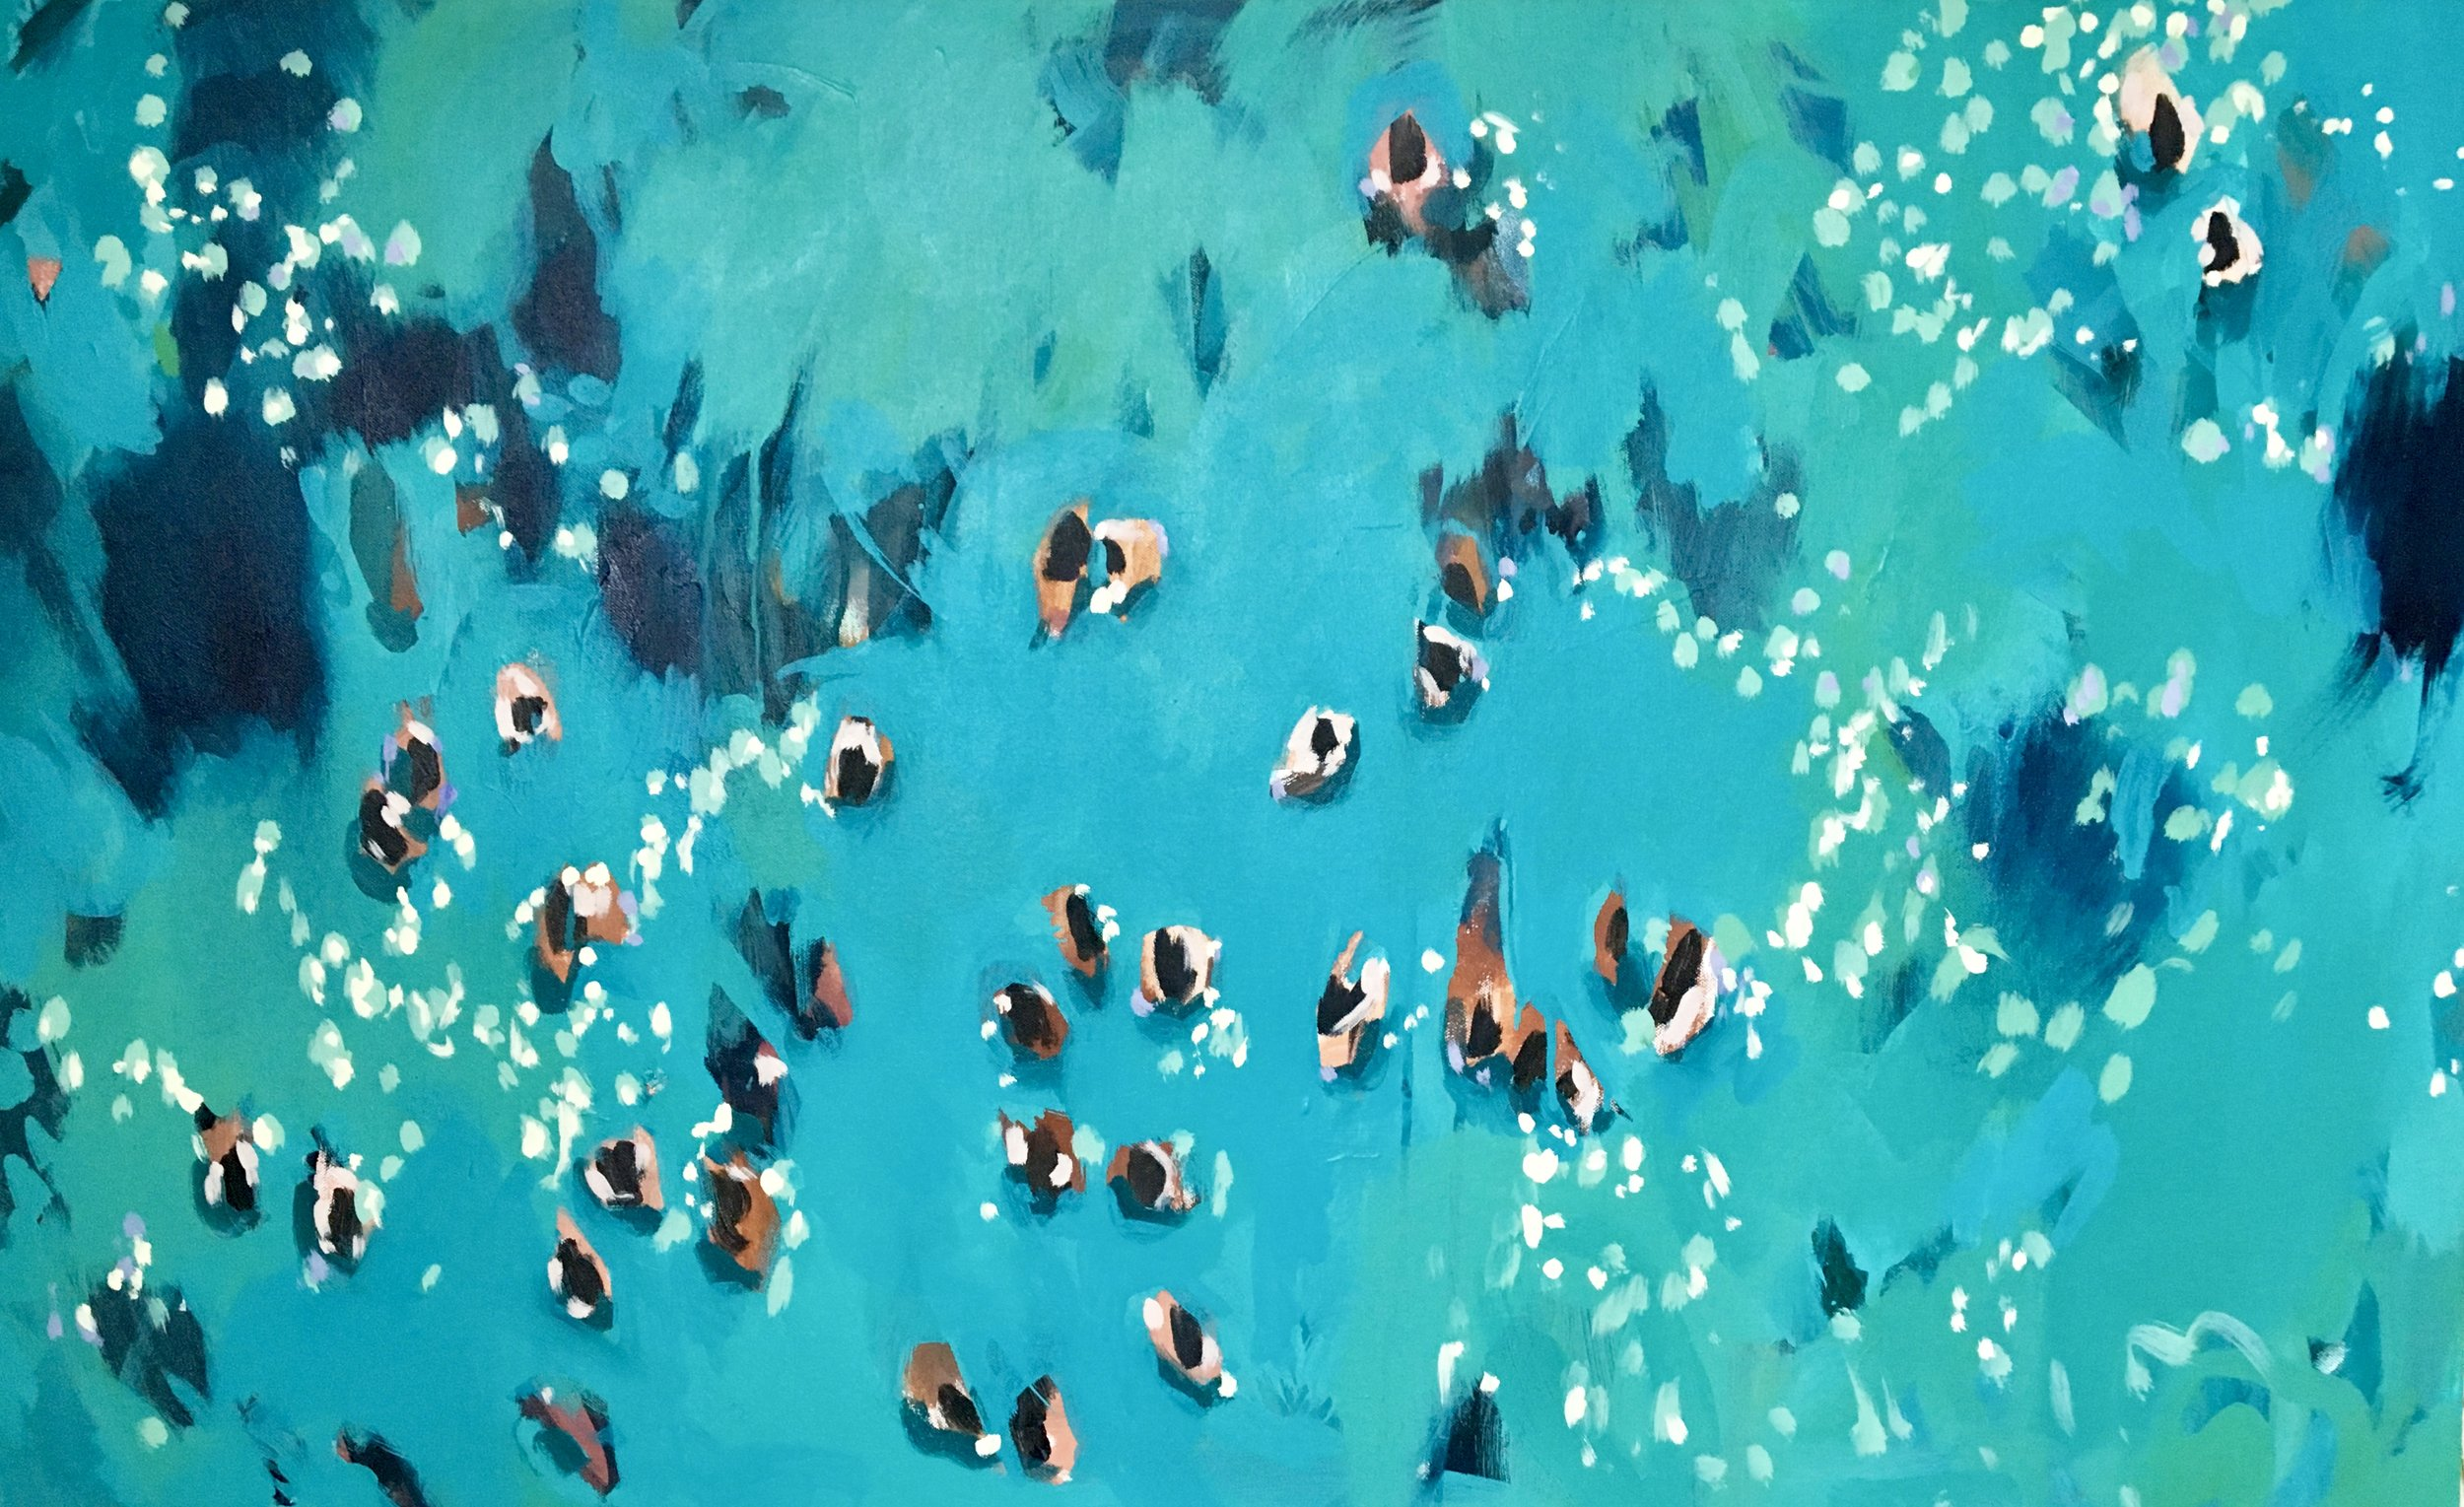 Blue Swimmers, 2018